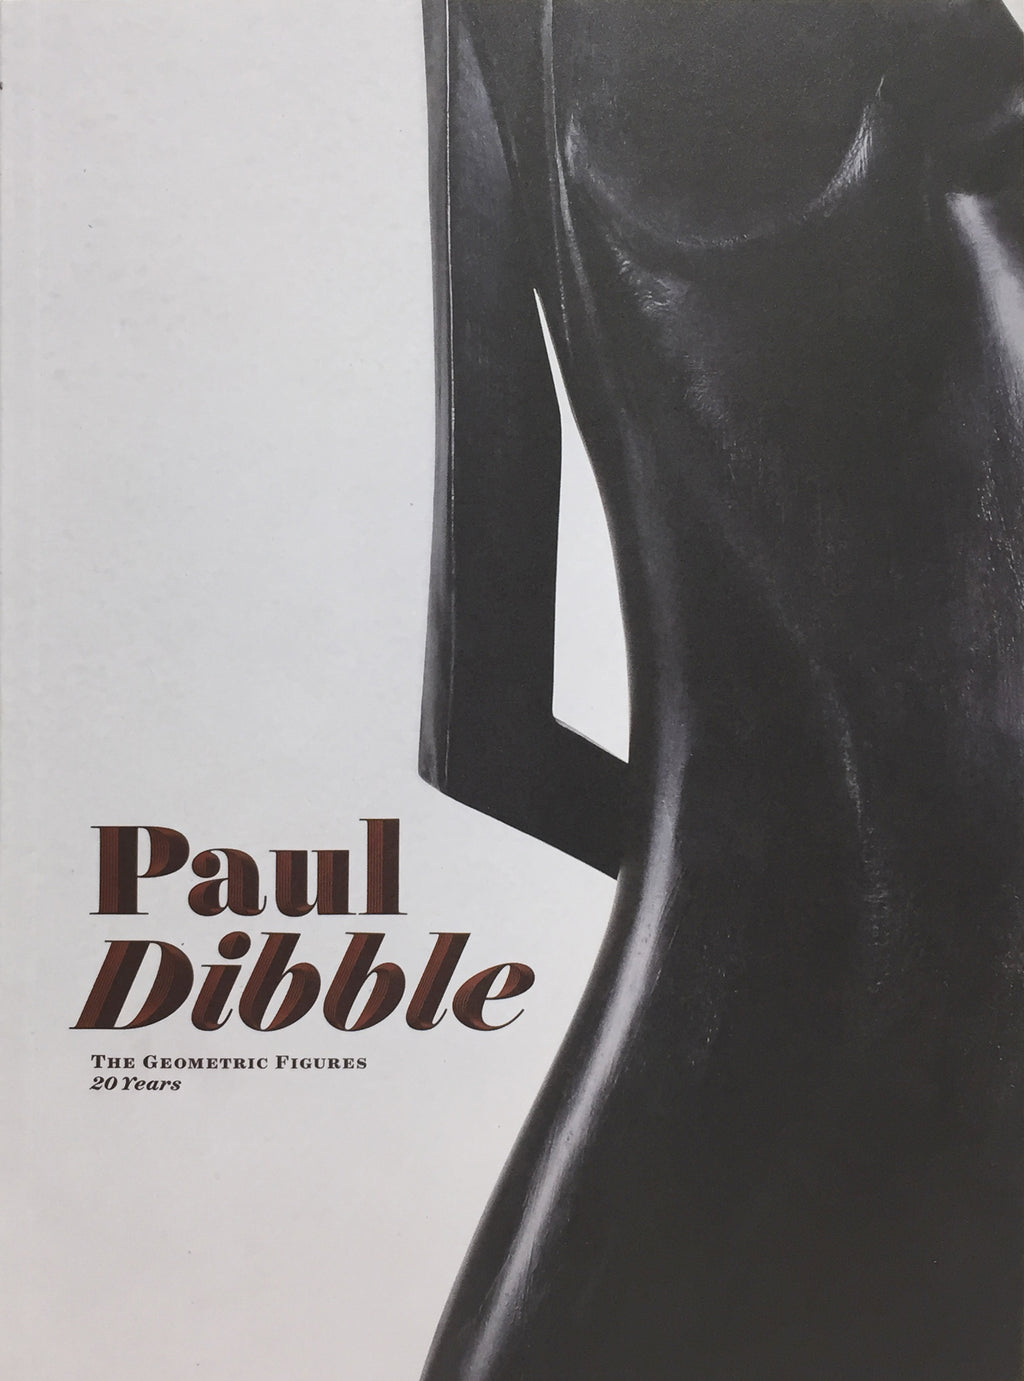 PAUL DIBBLE: THE GEOMETRIC FIGURES, 20 YEARS